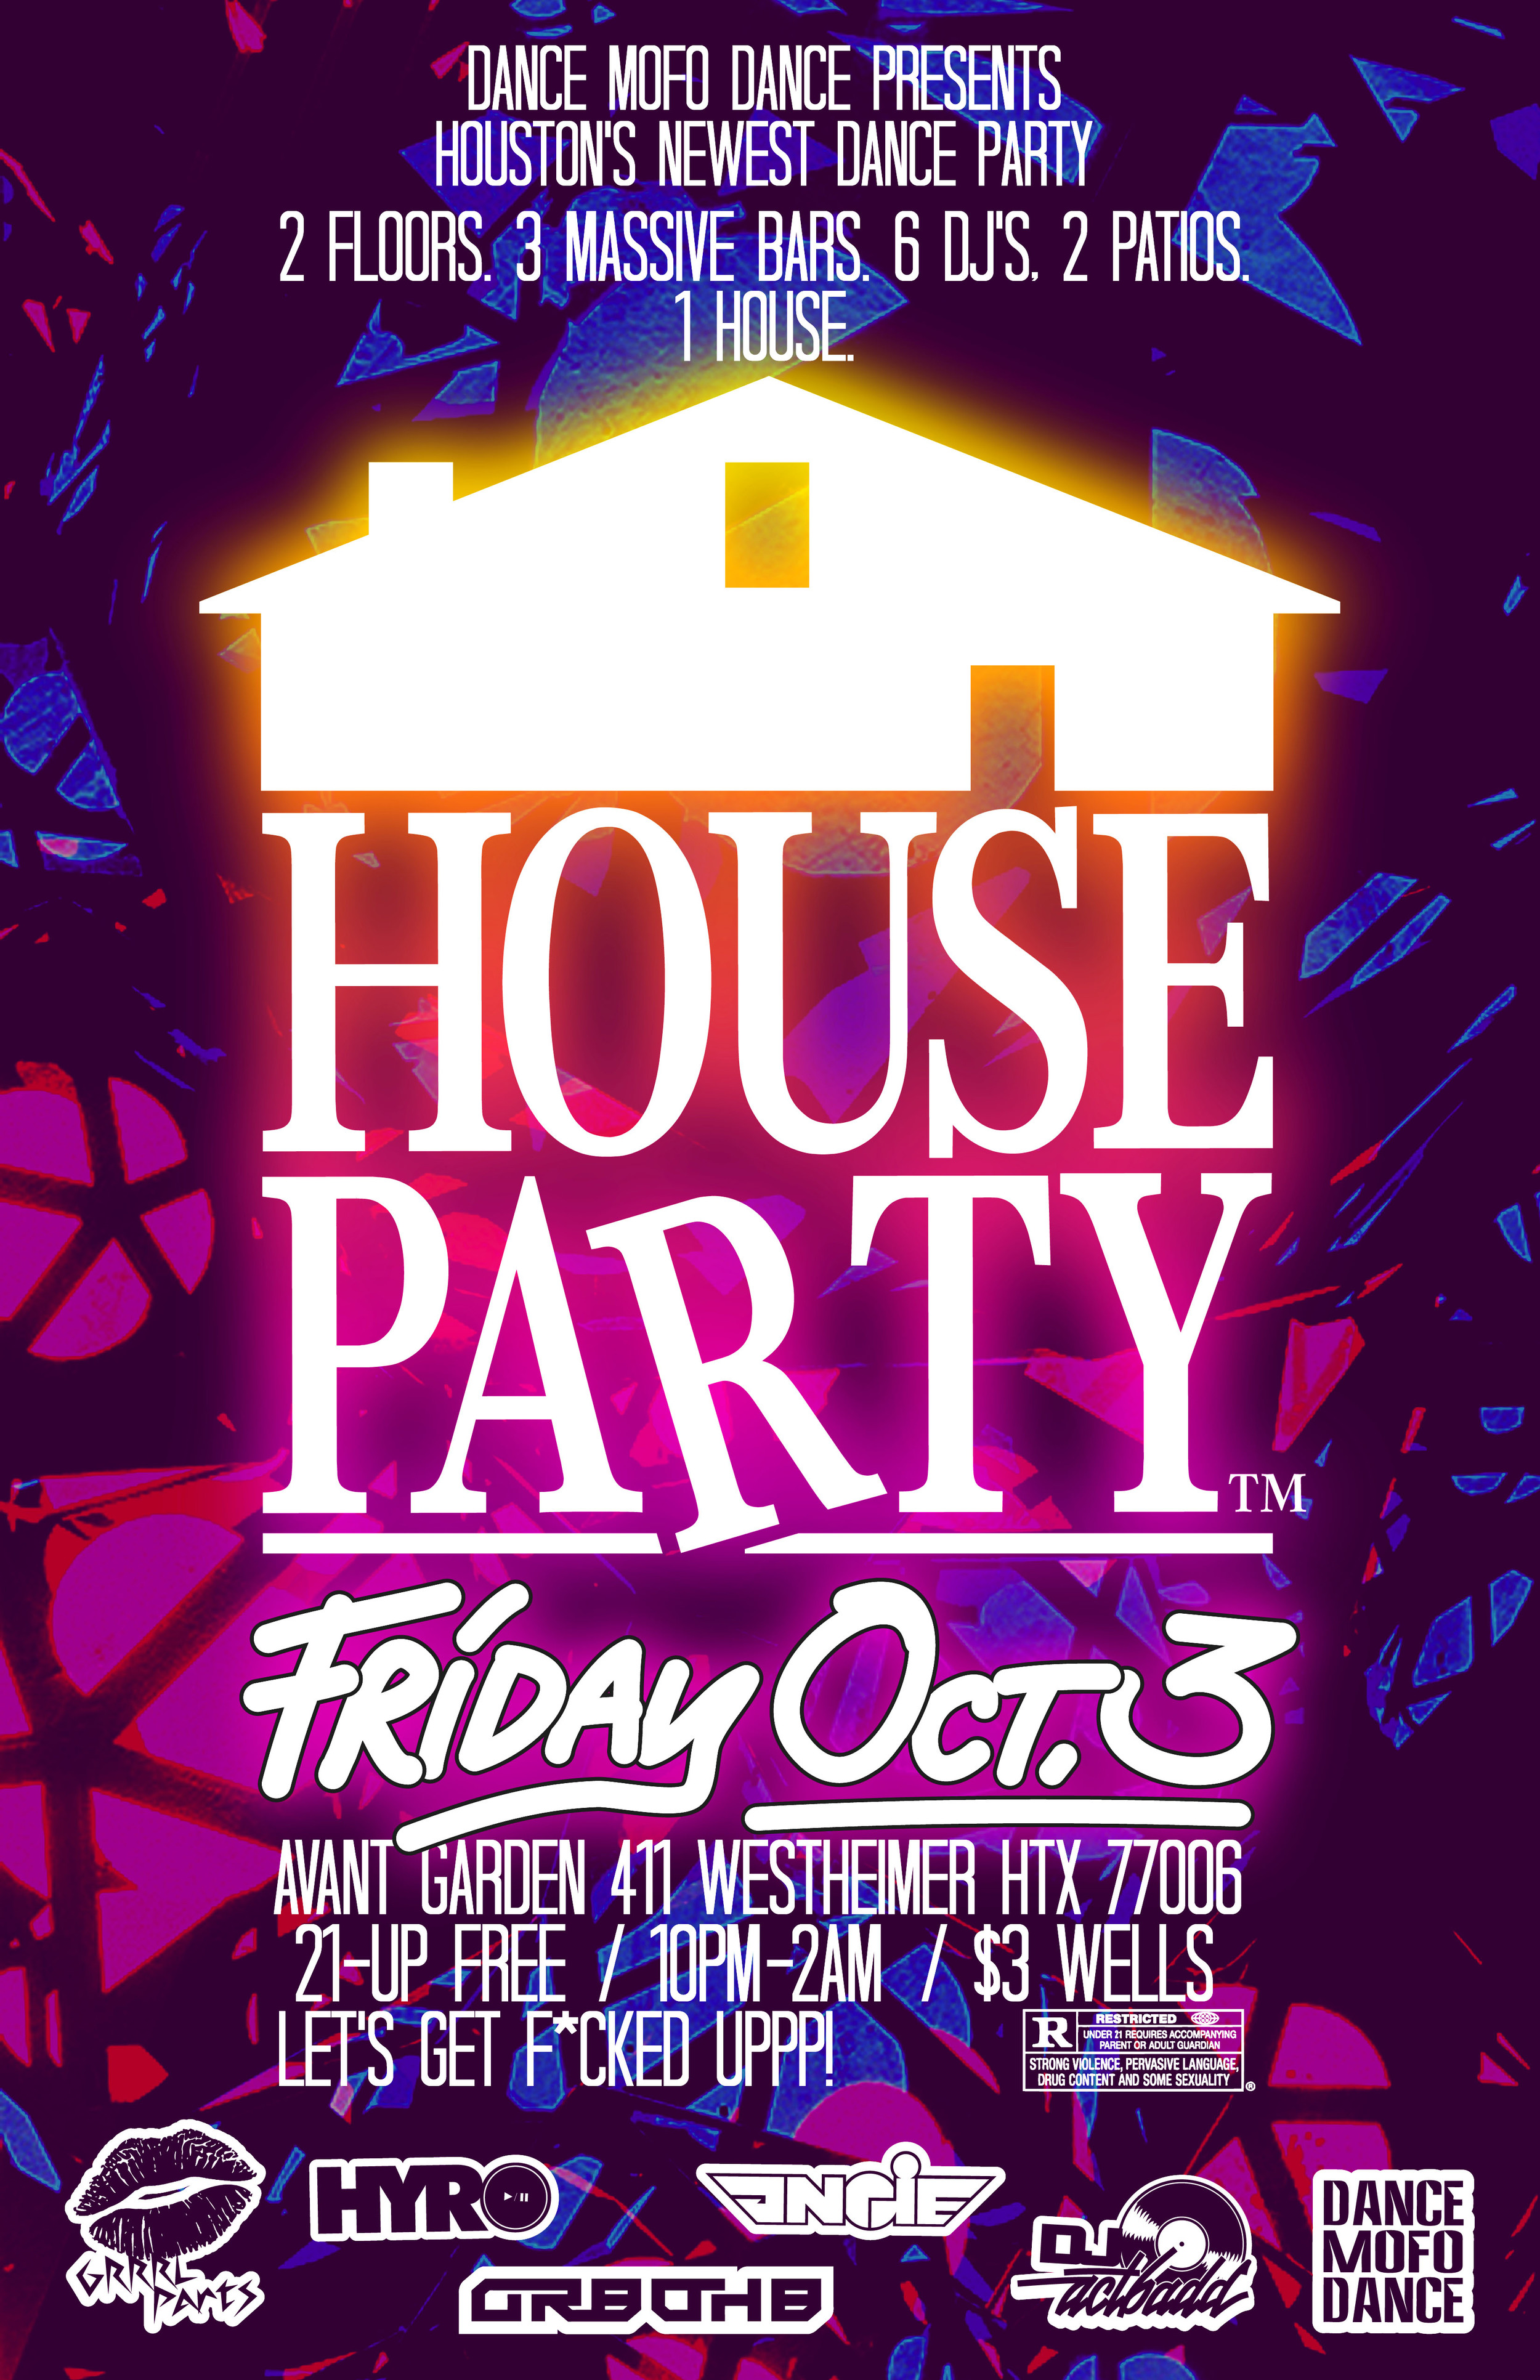 House_Party_OCT3_11x17.jpg